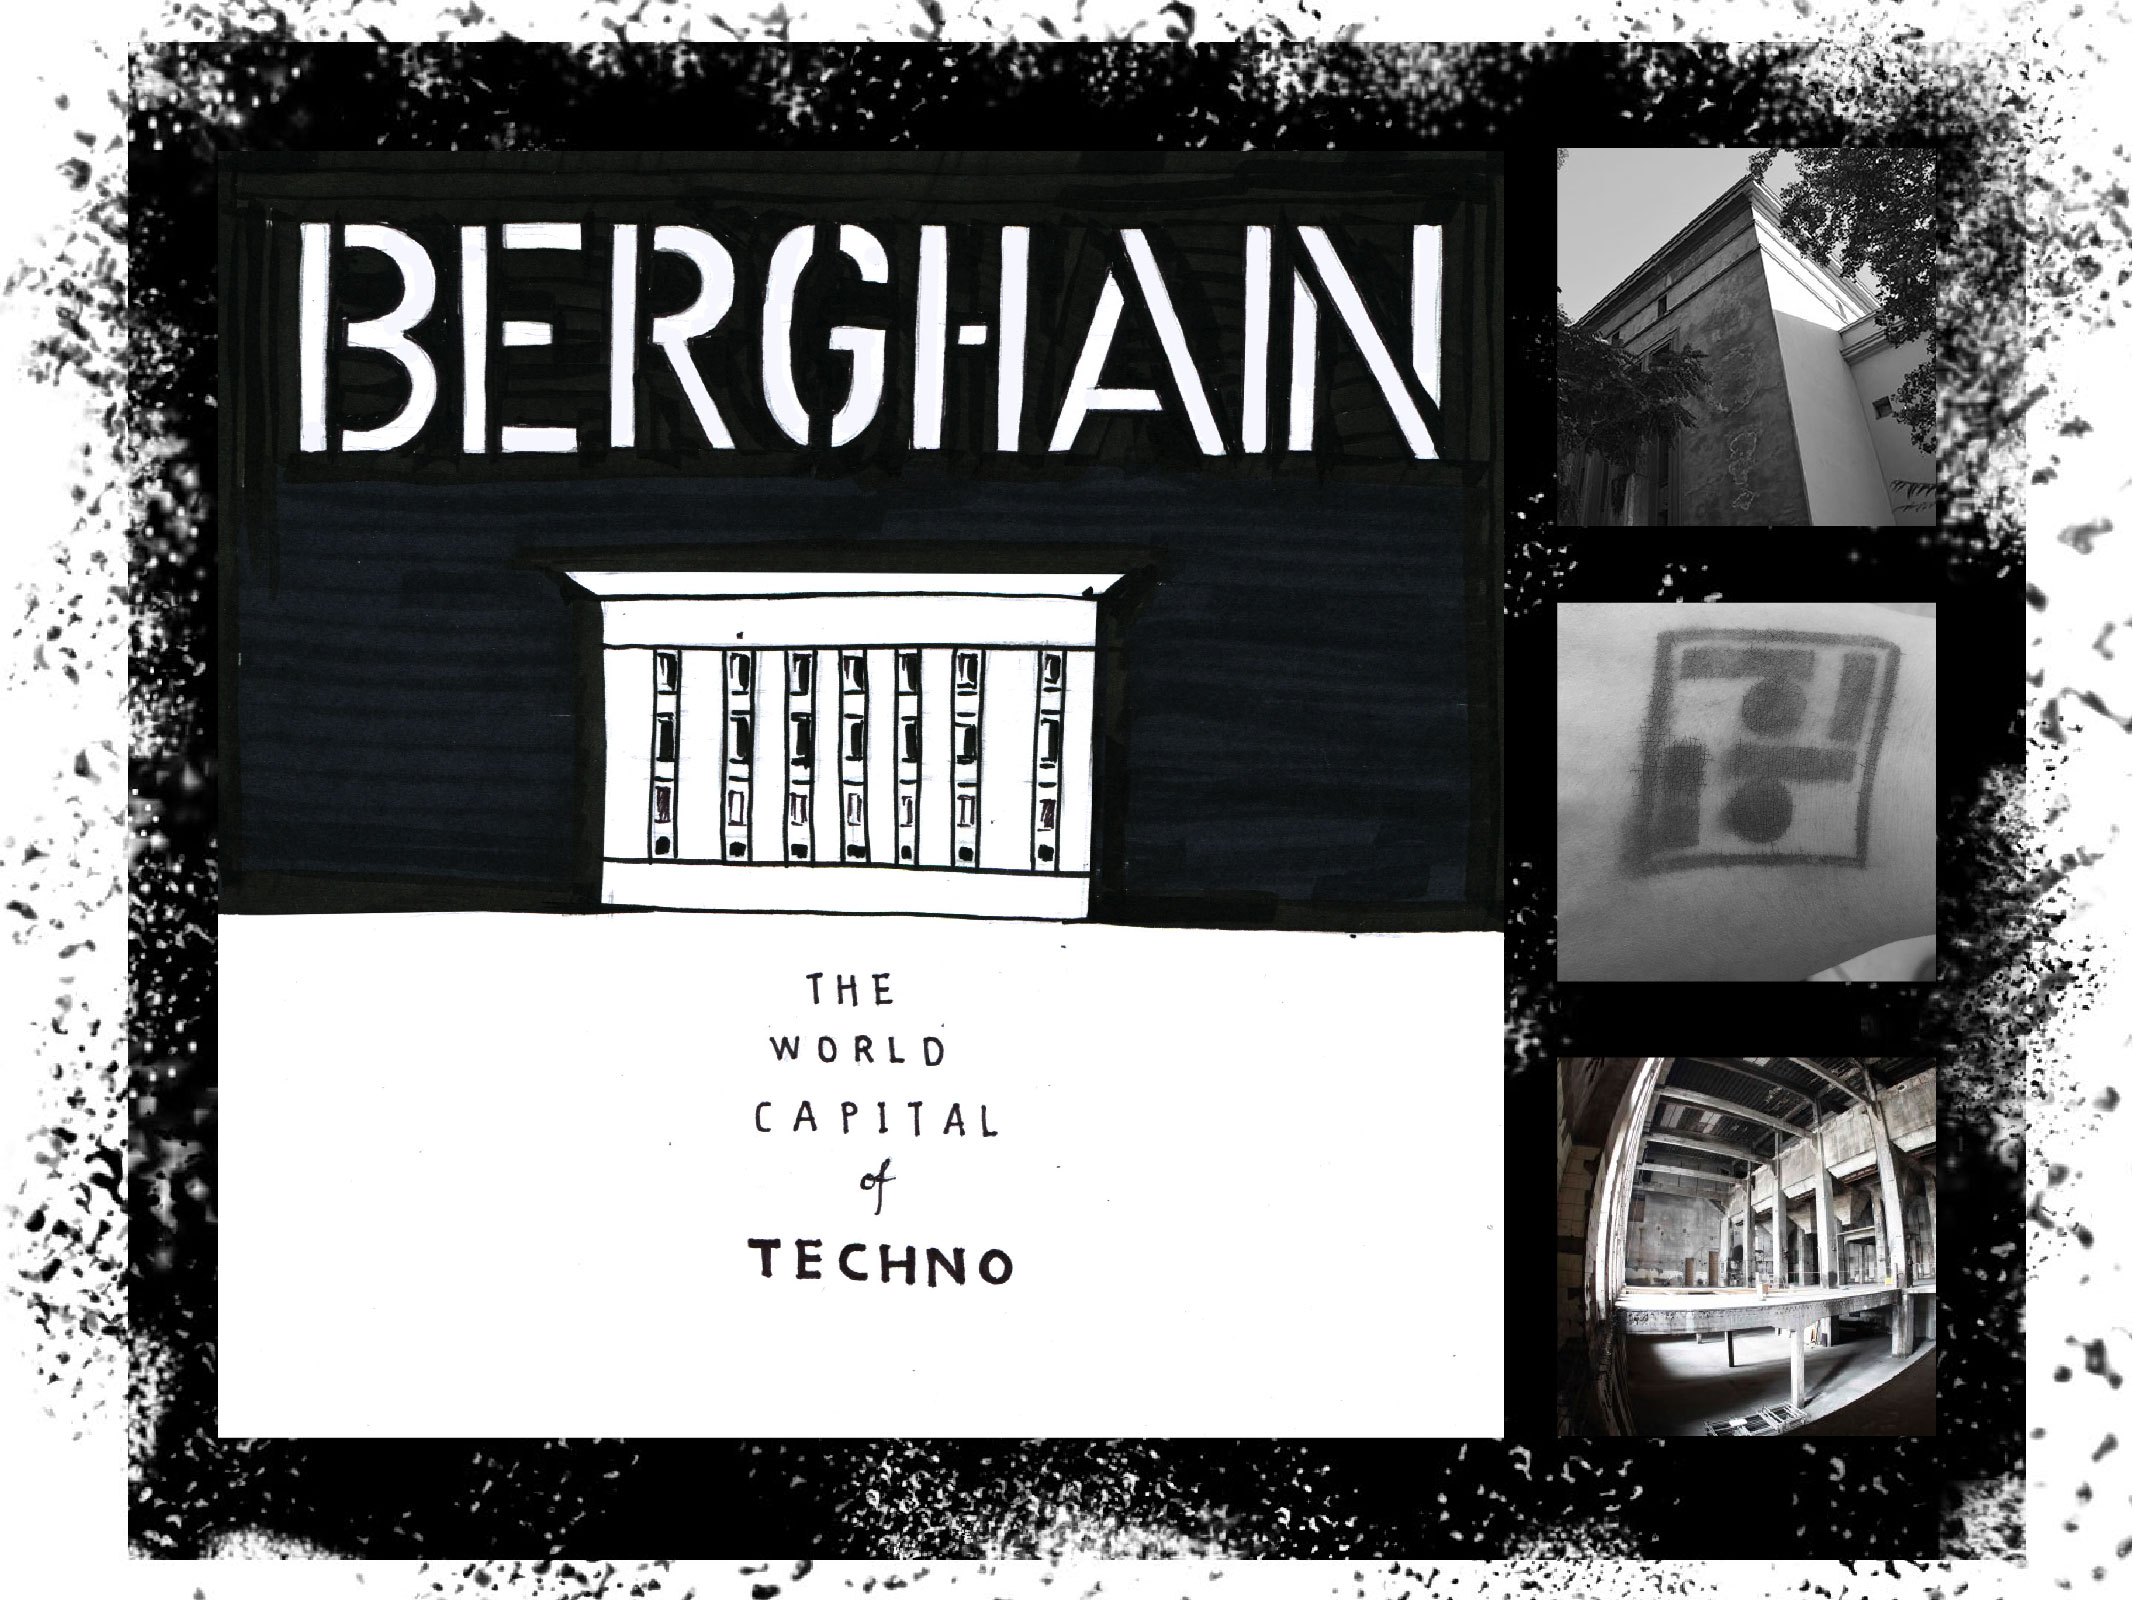 Sep 26  Berghain This is definitely the must-go in Berlin. I went there around 3am since I fell asleep quite early on Friday night. Surprisingly there was no line and I had no problem getting in. It was a crazy place but I was not really into techno. It was very funny that the shutter was opened for  few seconds to remind people it was bright outside. When I got out of the club, it was 8 am. Having a coffee and start my day.